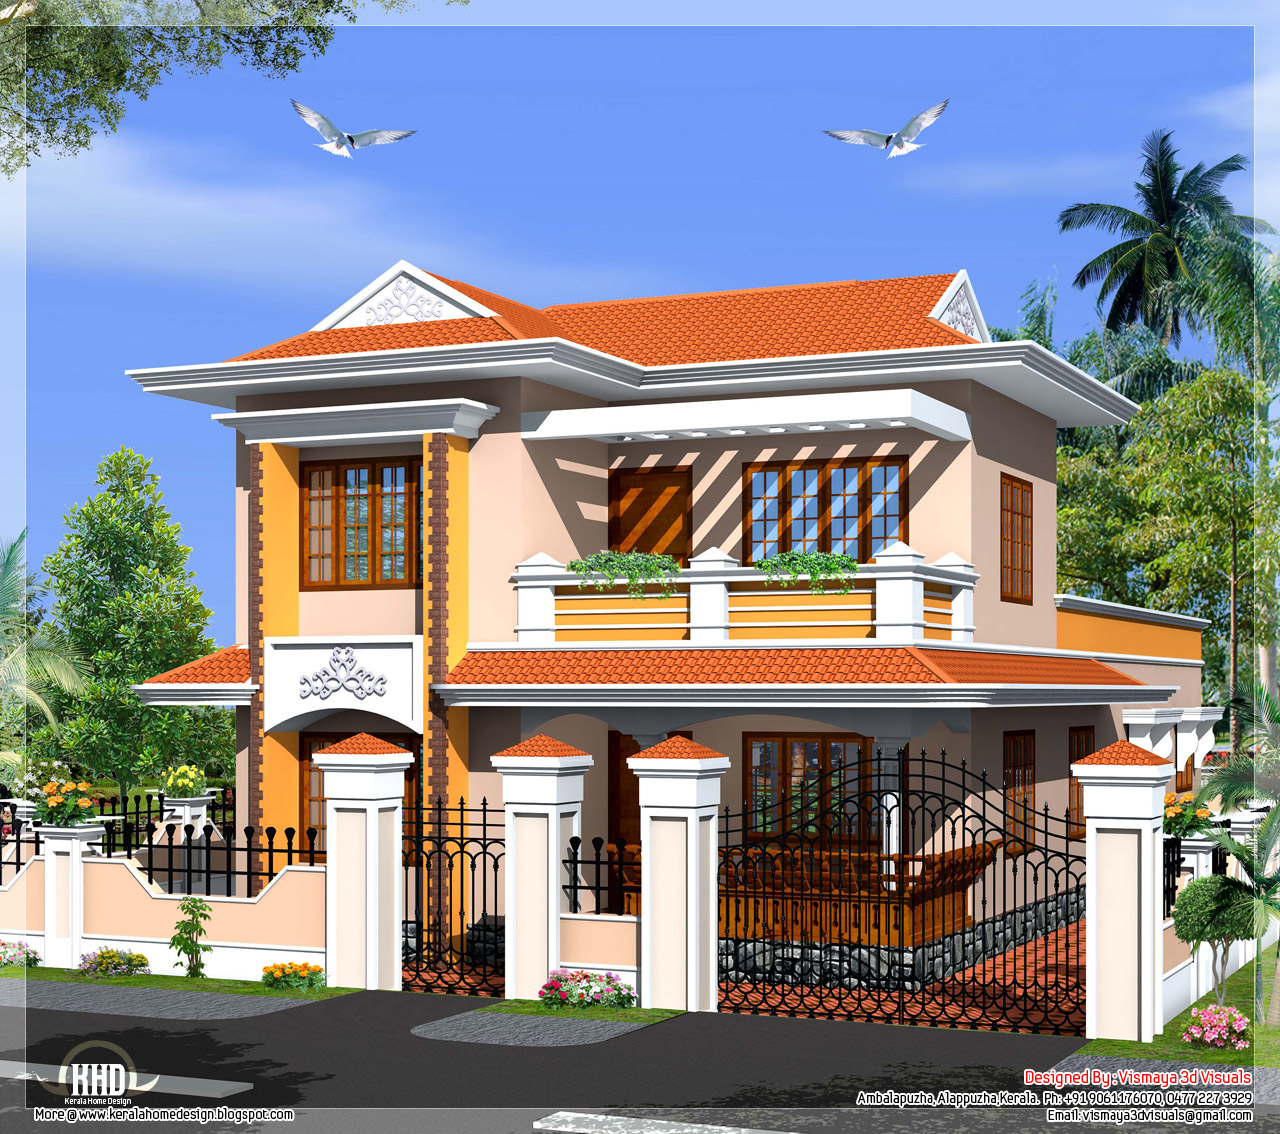 Kerala model villa in 2110 in square feet kerala home for Kerala house models photos